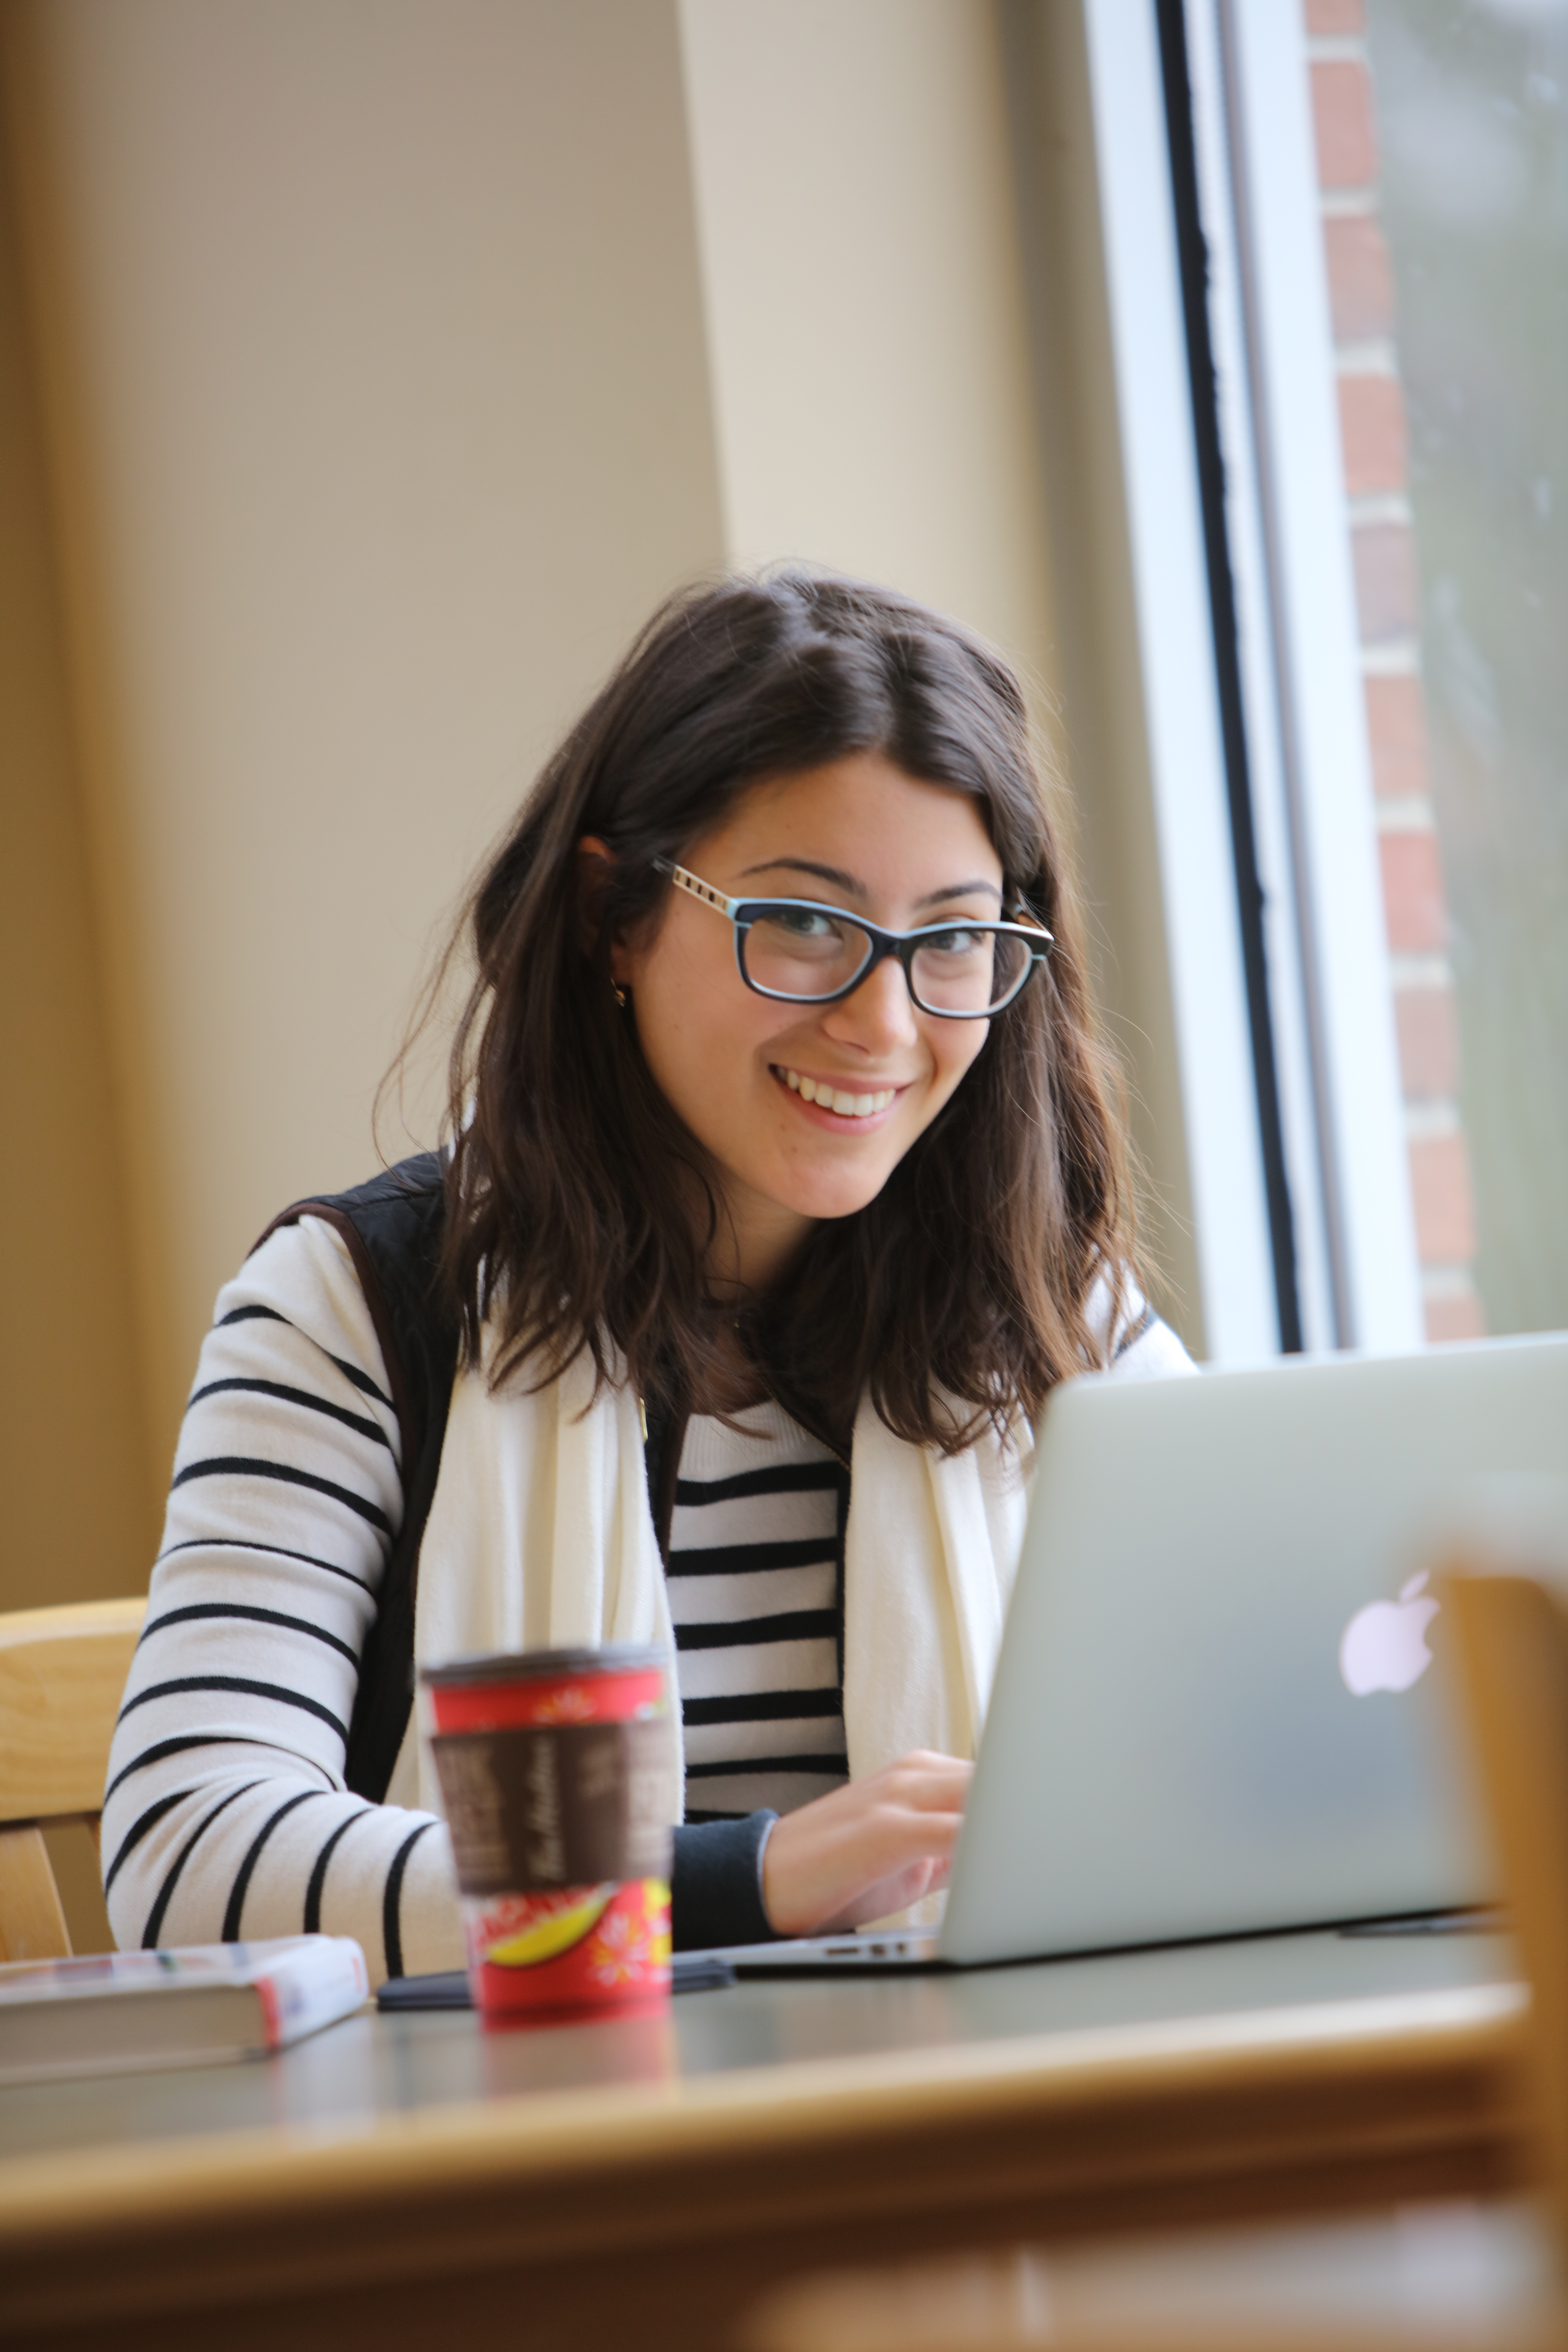 A smiling student sits at her laptop, working in the Huron library.